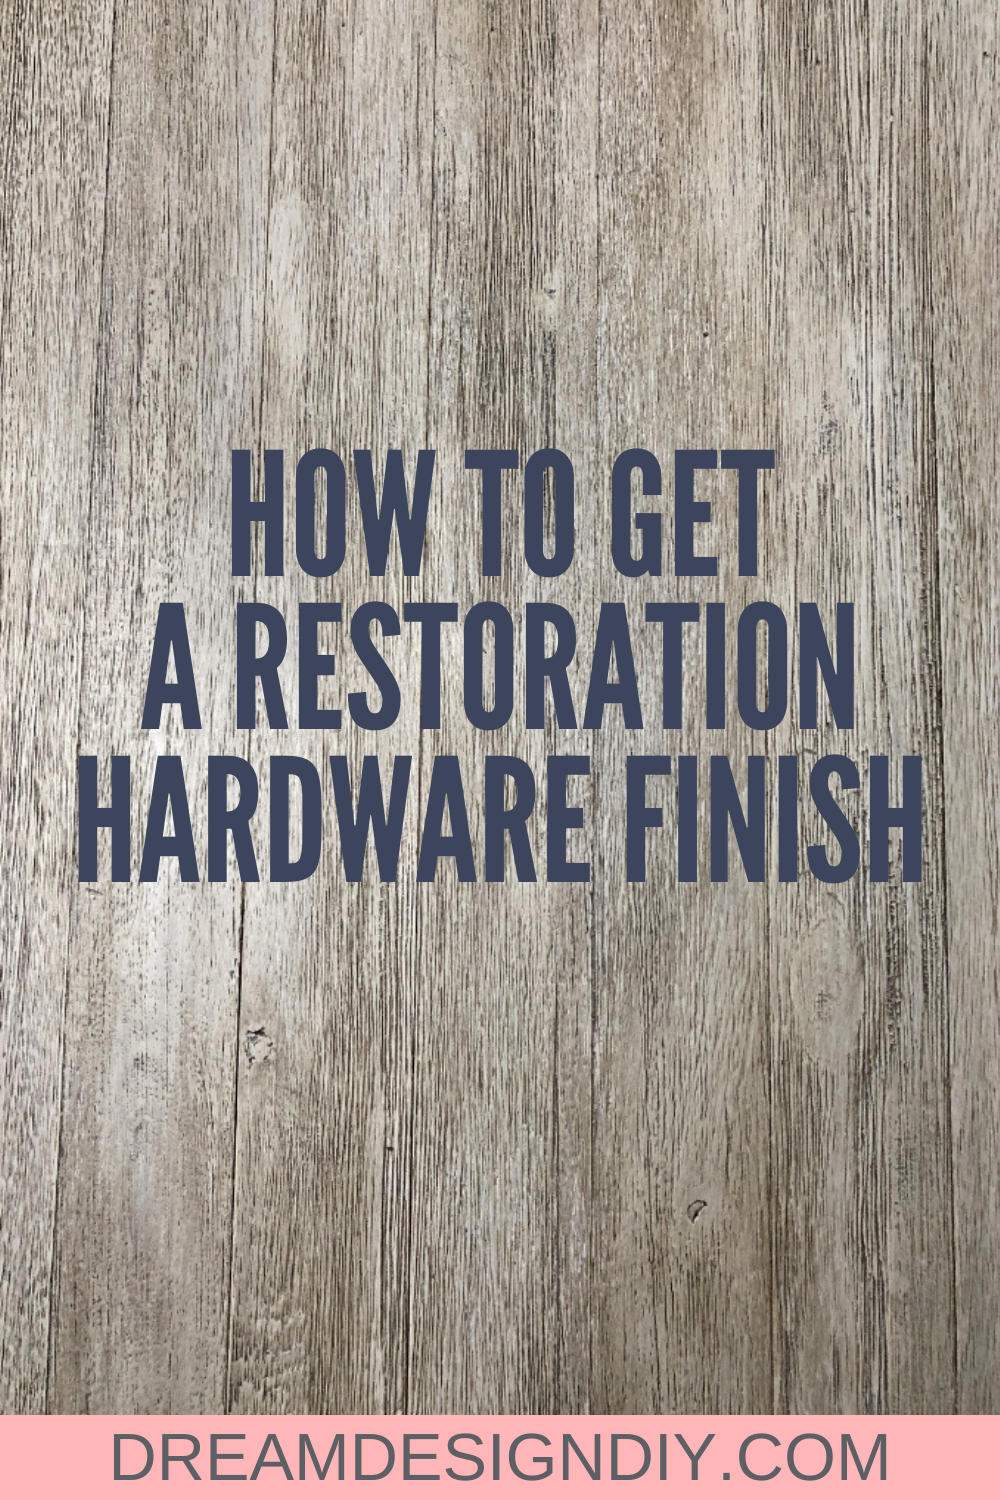 How to Get the Restoration Hardware Look for Less - Dream Design DIY